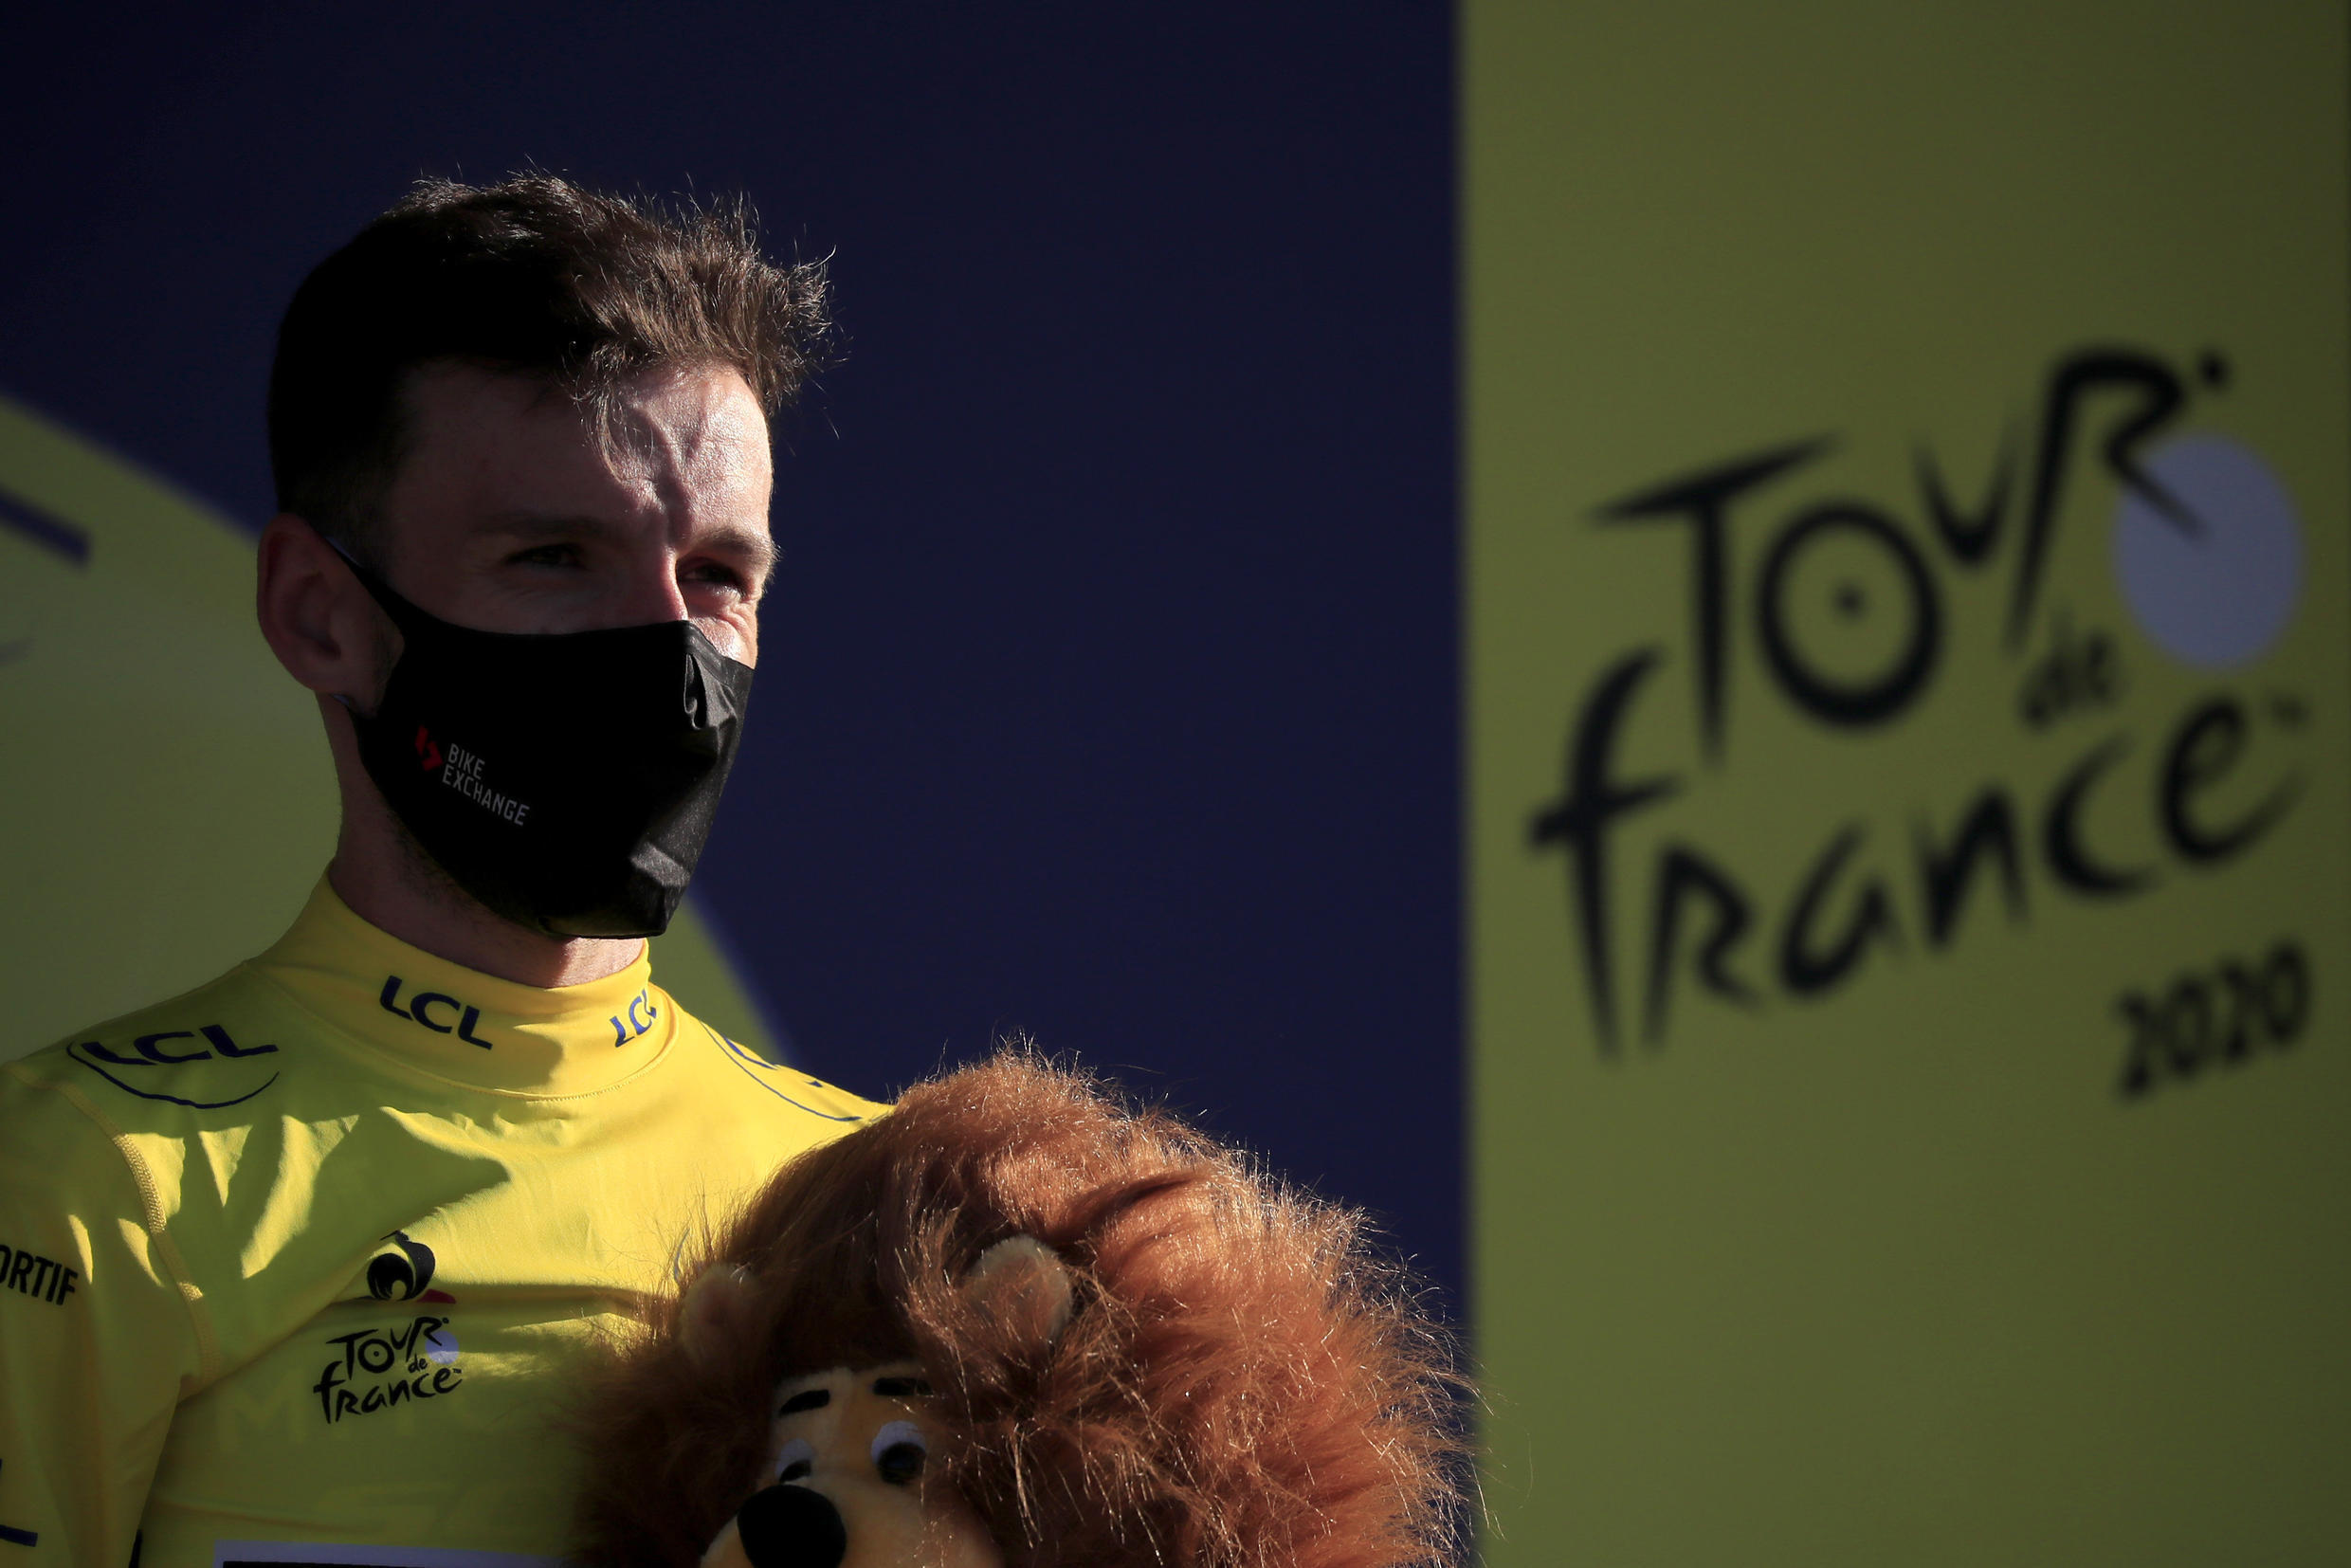 Adam Yates moved into first place in the Tour de France after the previous leader Julian Alaphilippe was given a 20 second time- penalty.